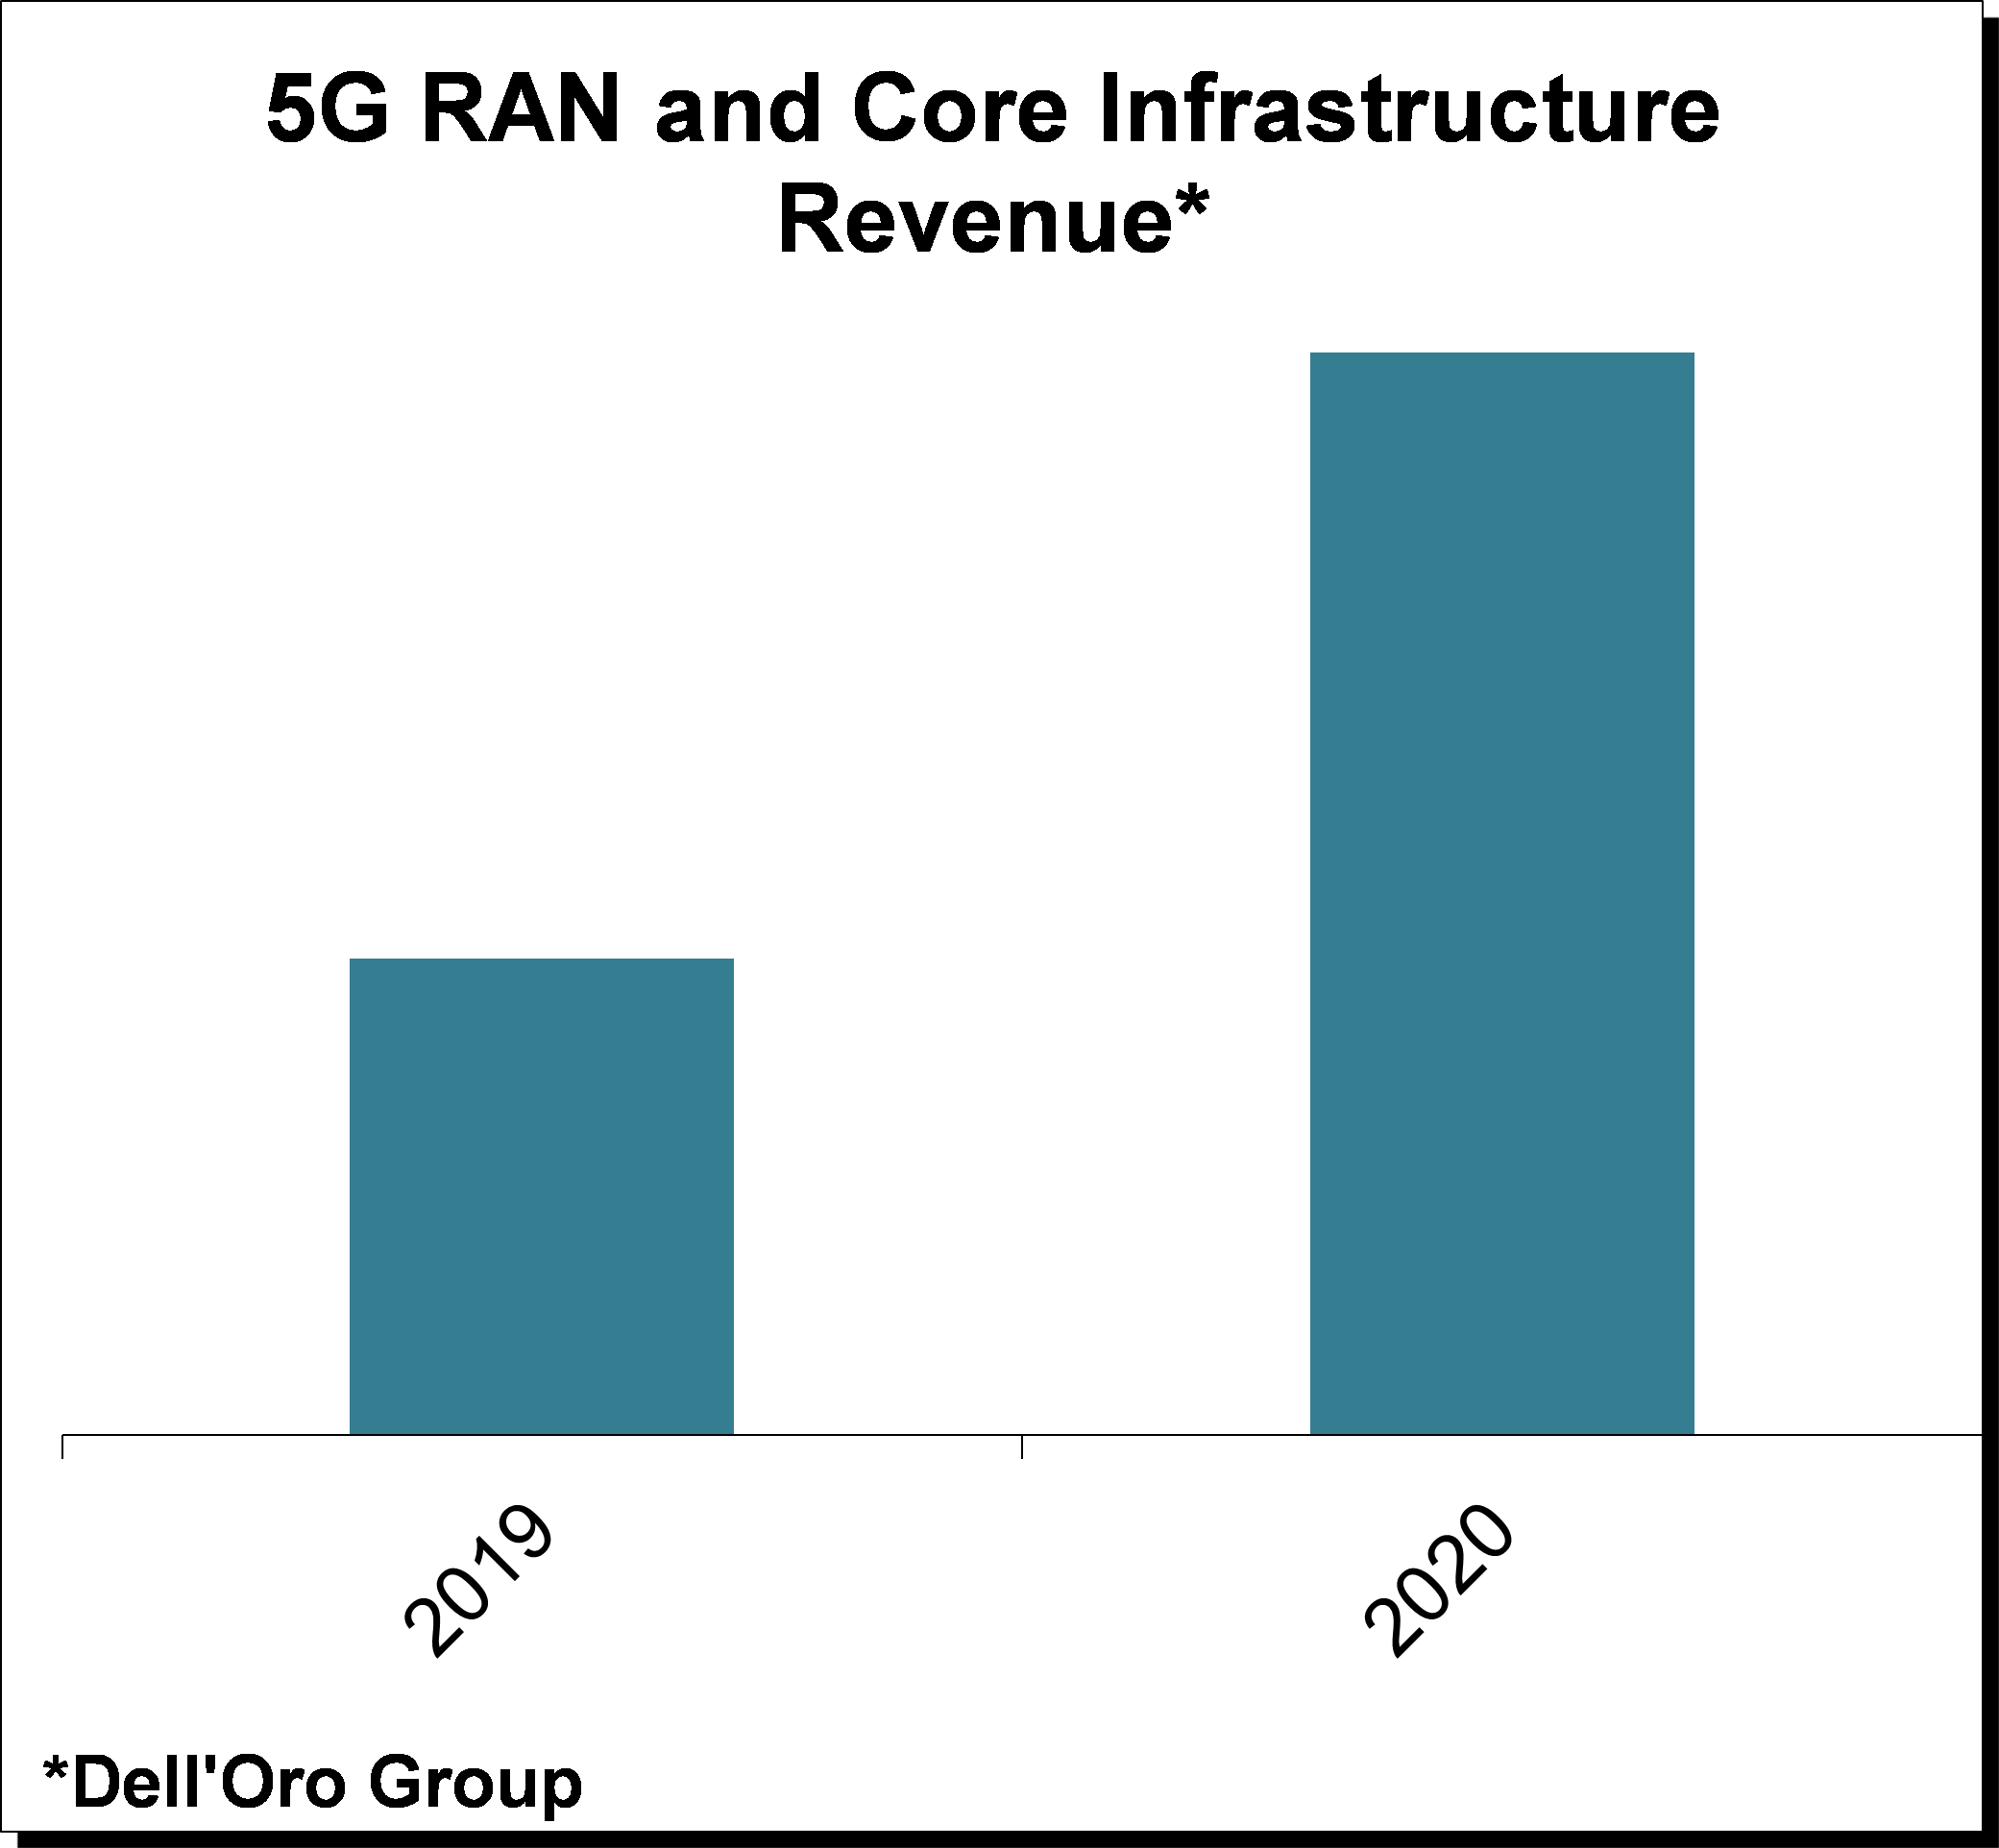 Dell'Oro Group 5G RAN and Core Infrastructure Revenue Chart